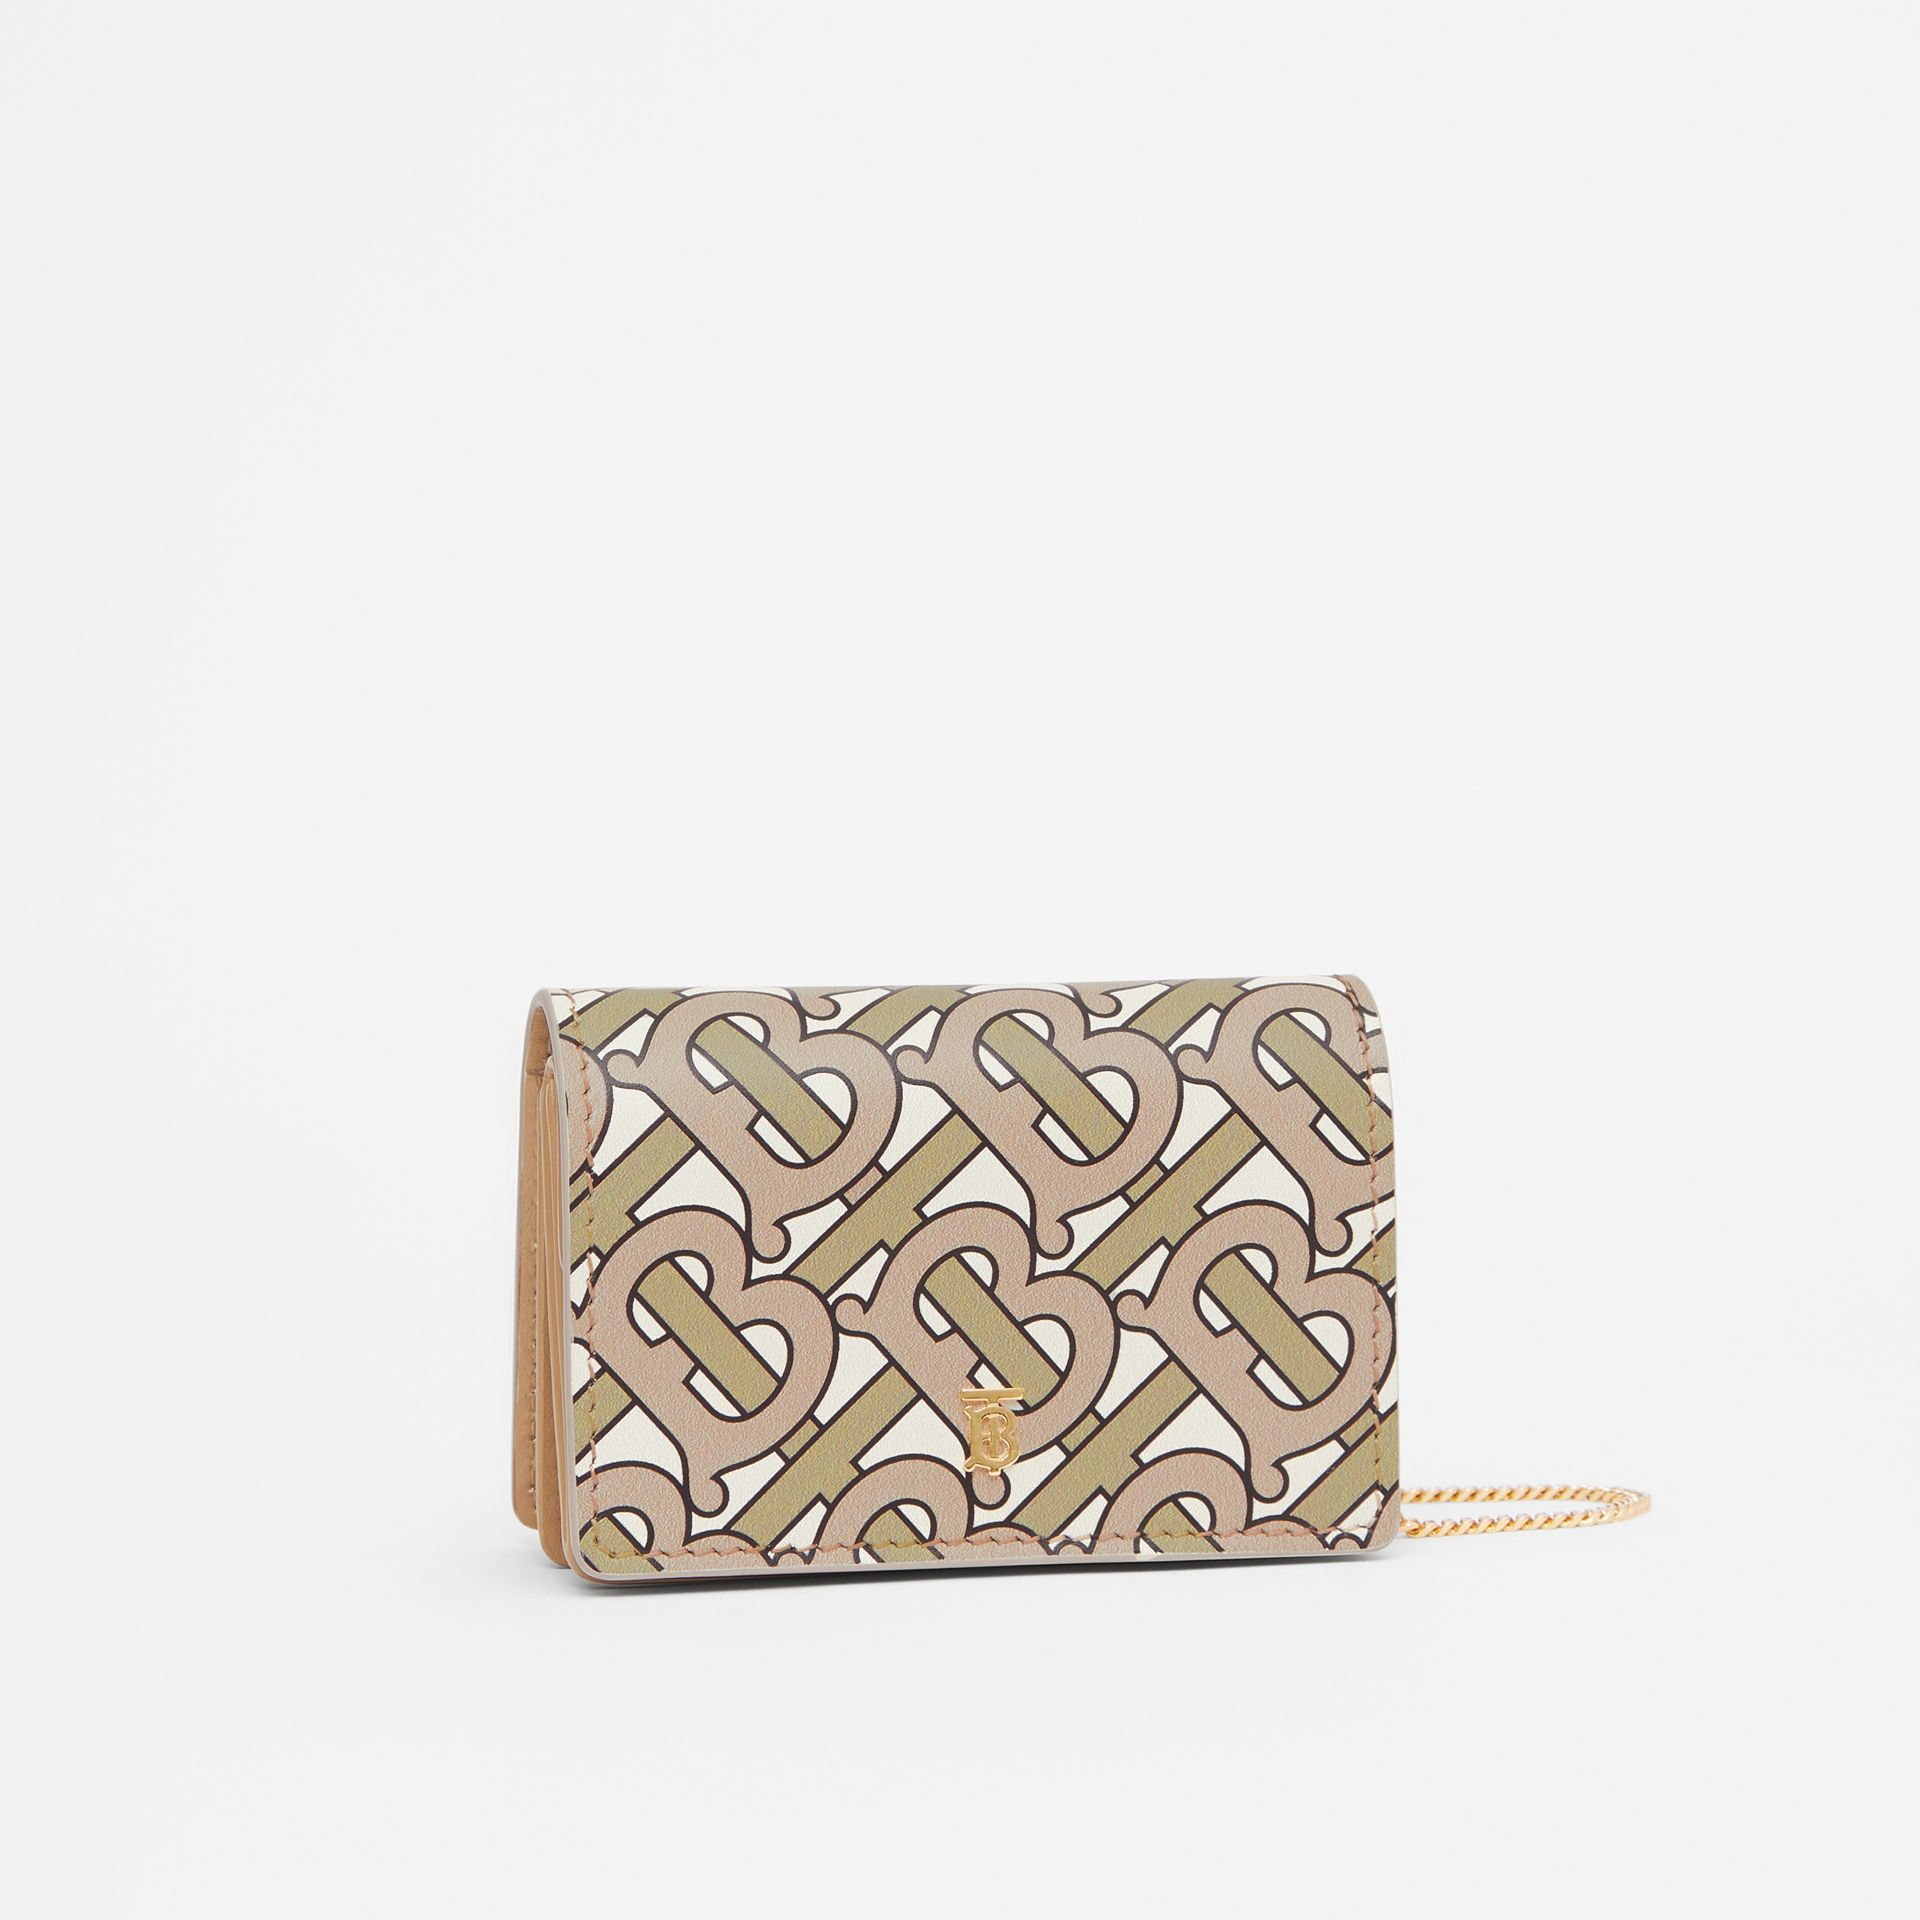 Monogram Print Card Case with Detachable Strap in Beige - Women | Burberry Hong Kong S.A.R - gallery image 6